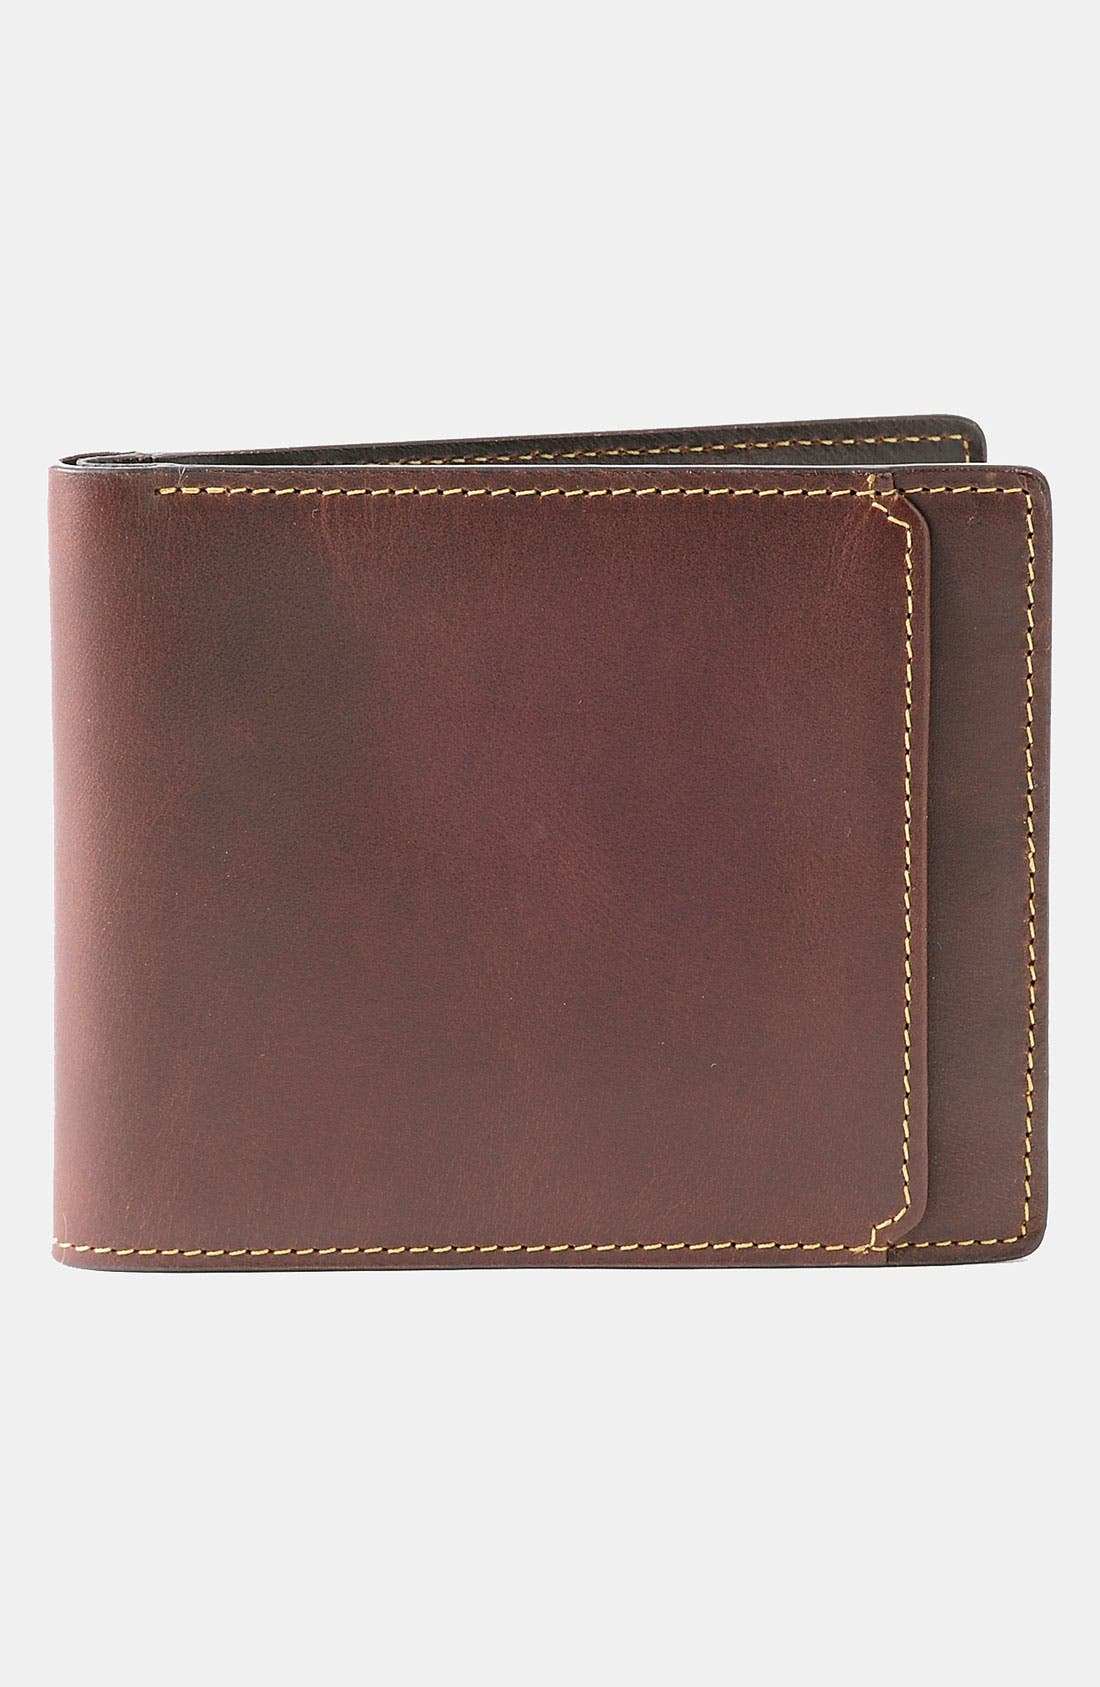 'Bryant' RFID Blocker Slimfold Wallet,                         Main,                         color, Antique Mahogany